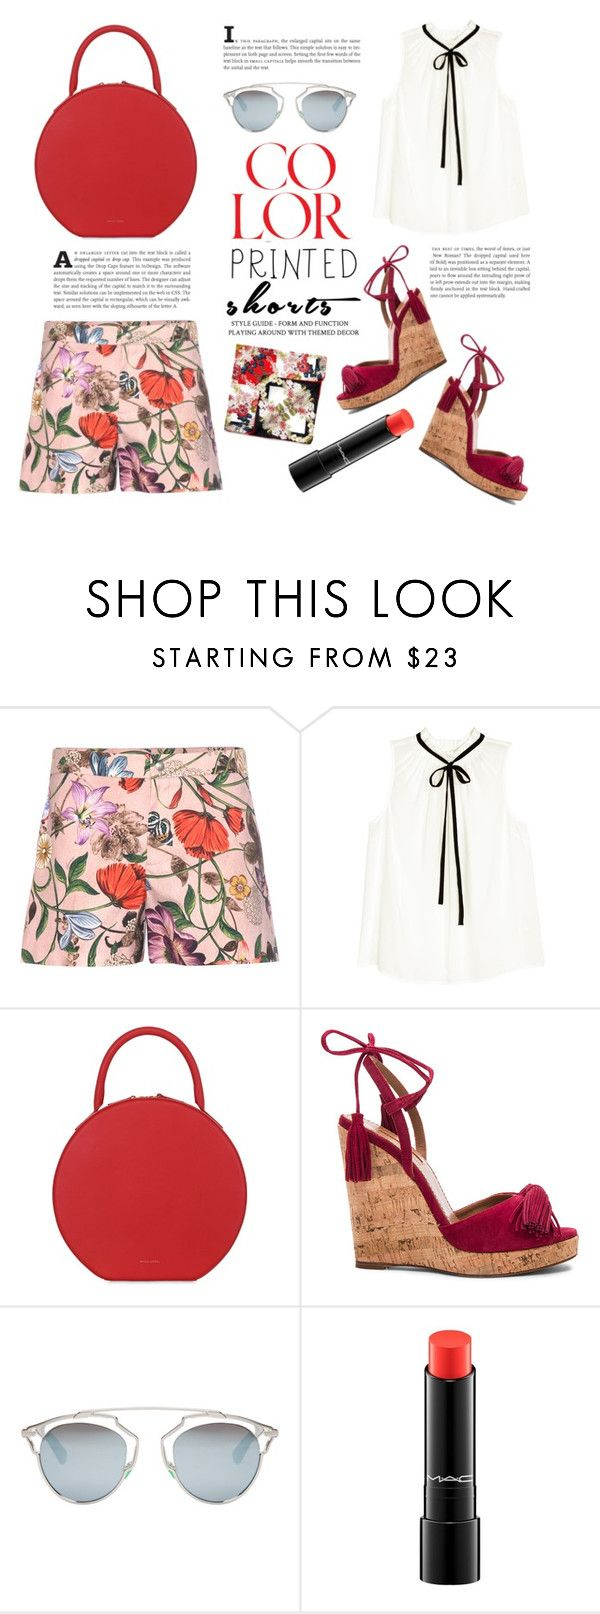 """Style with scarf #171"" by st-piece ❤ liked on Polyvore featuring Gucci, H&M, Mansur Gavriel, Aquazzura, Christian Dior and MAC Cosmetics"